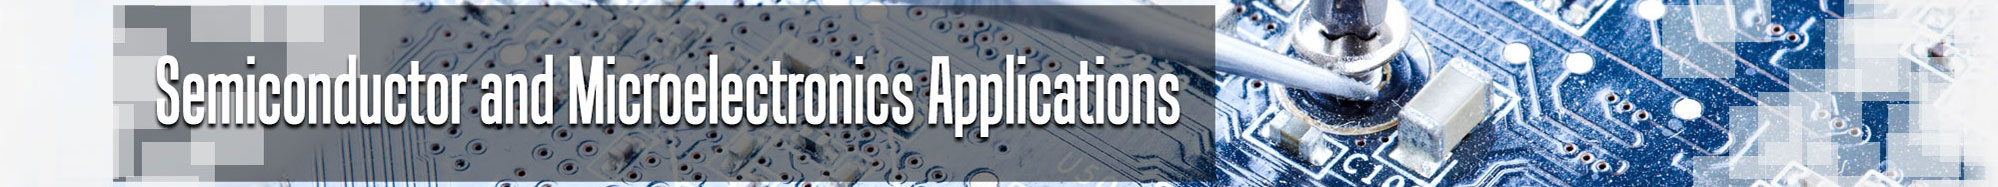 Semiconductor and Microelectronics Applications